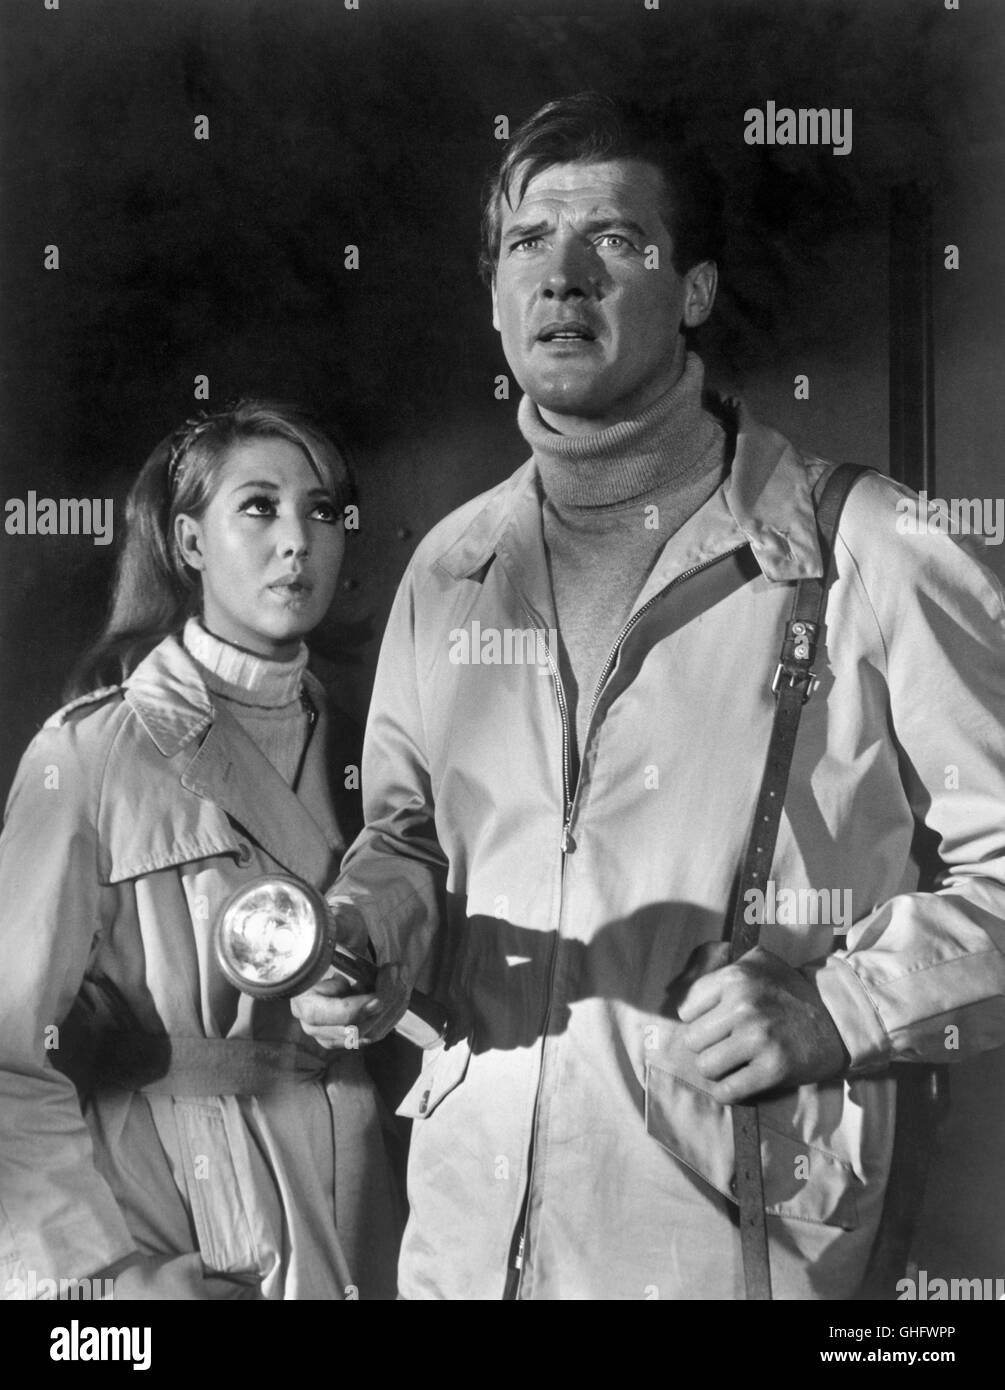 ANNETTE ANDRE (Carmen) and ROGER MOORE (Simon Templar, The Saint) in episode: The House on Dragon's Rock (1968). - Stock Image